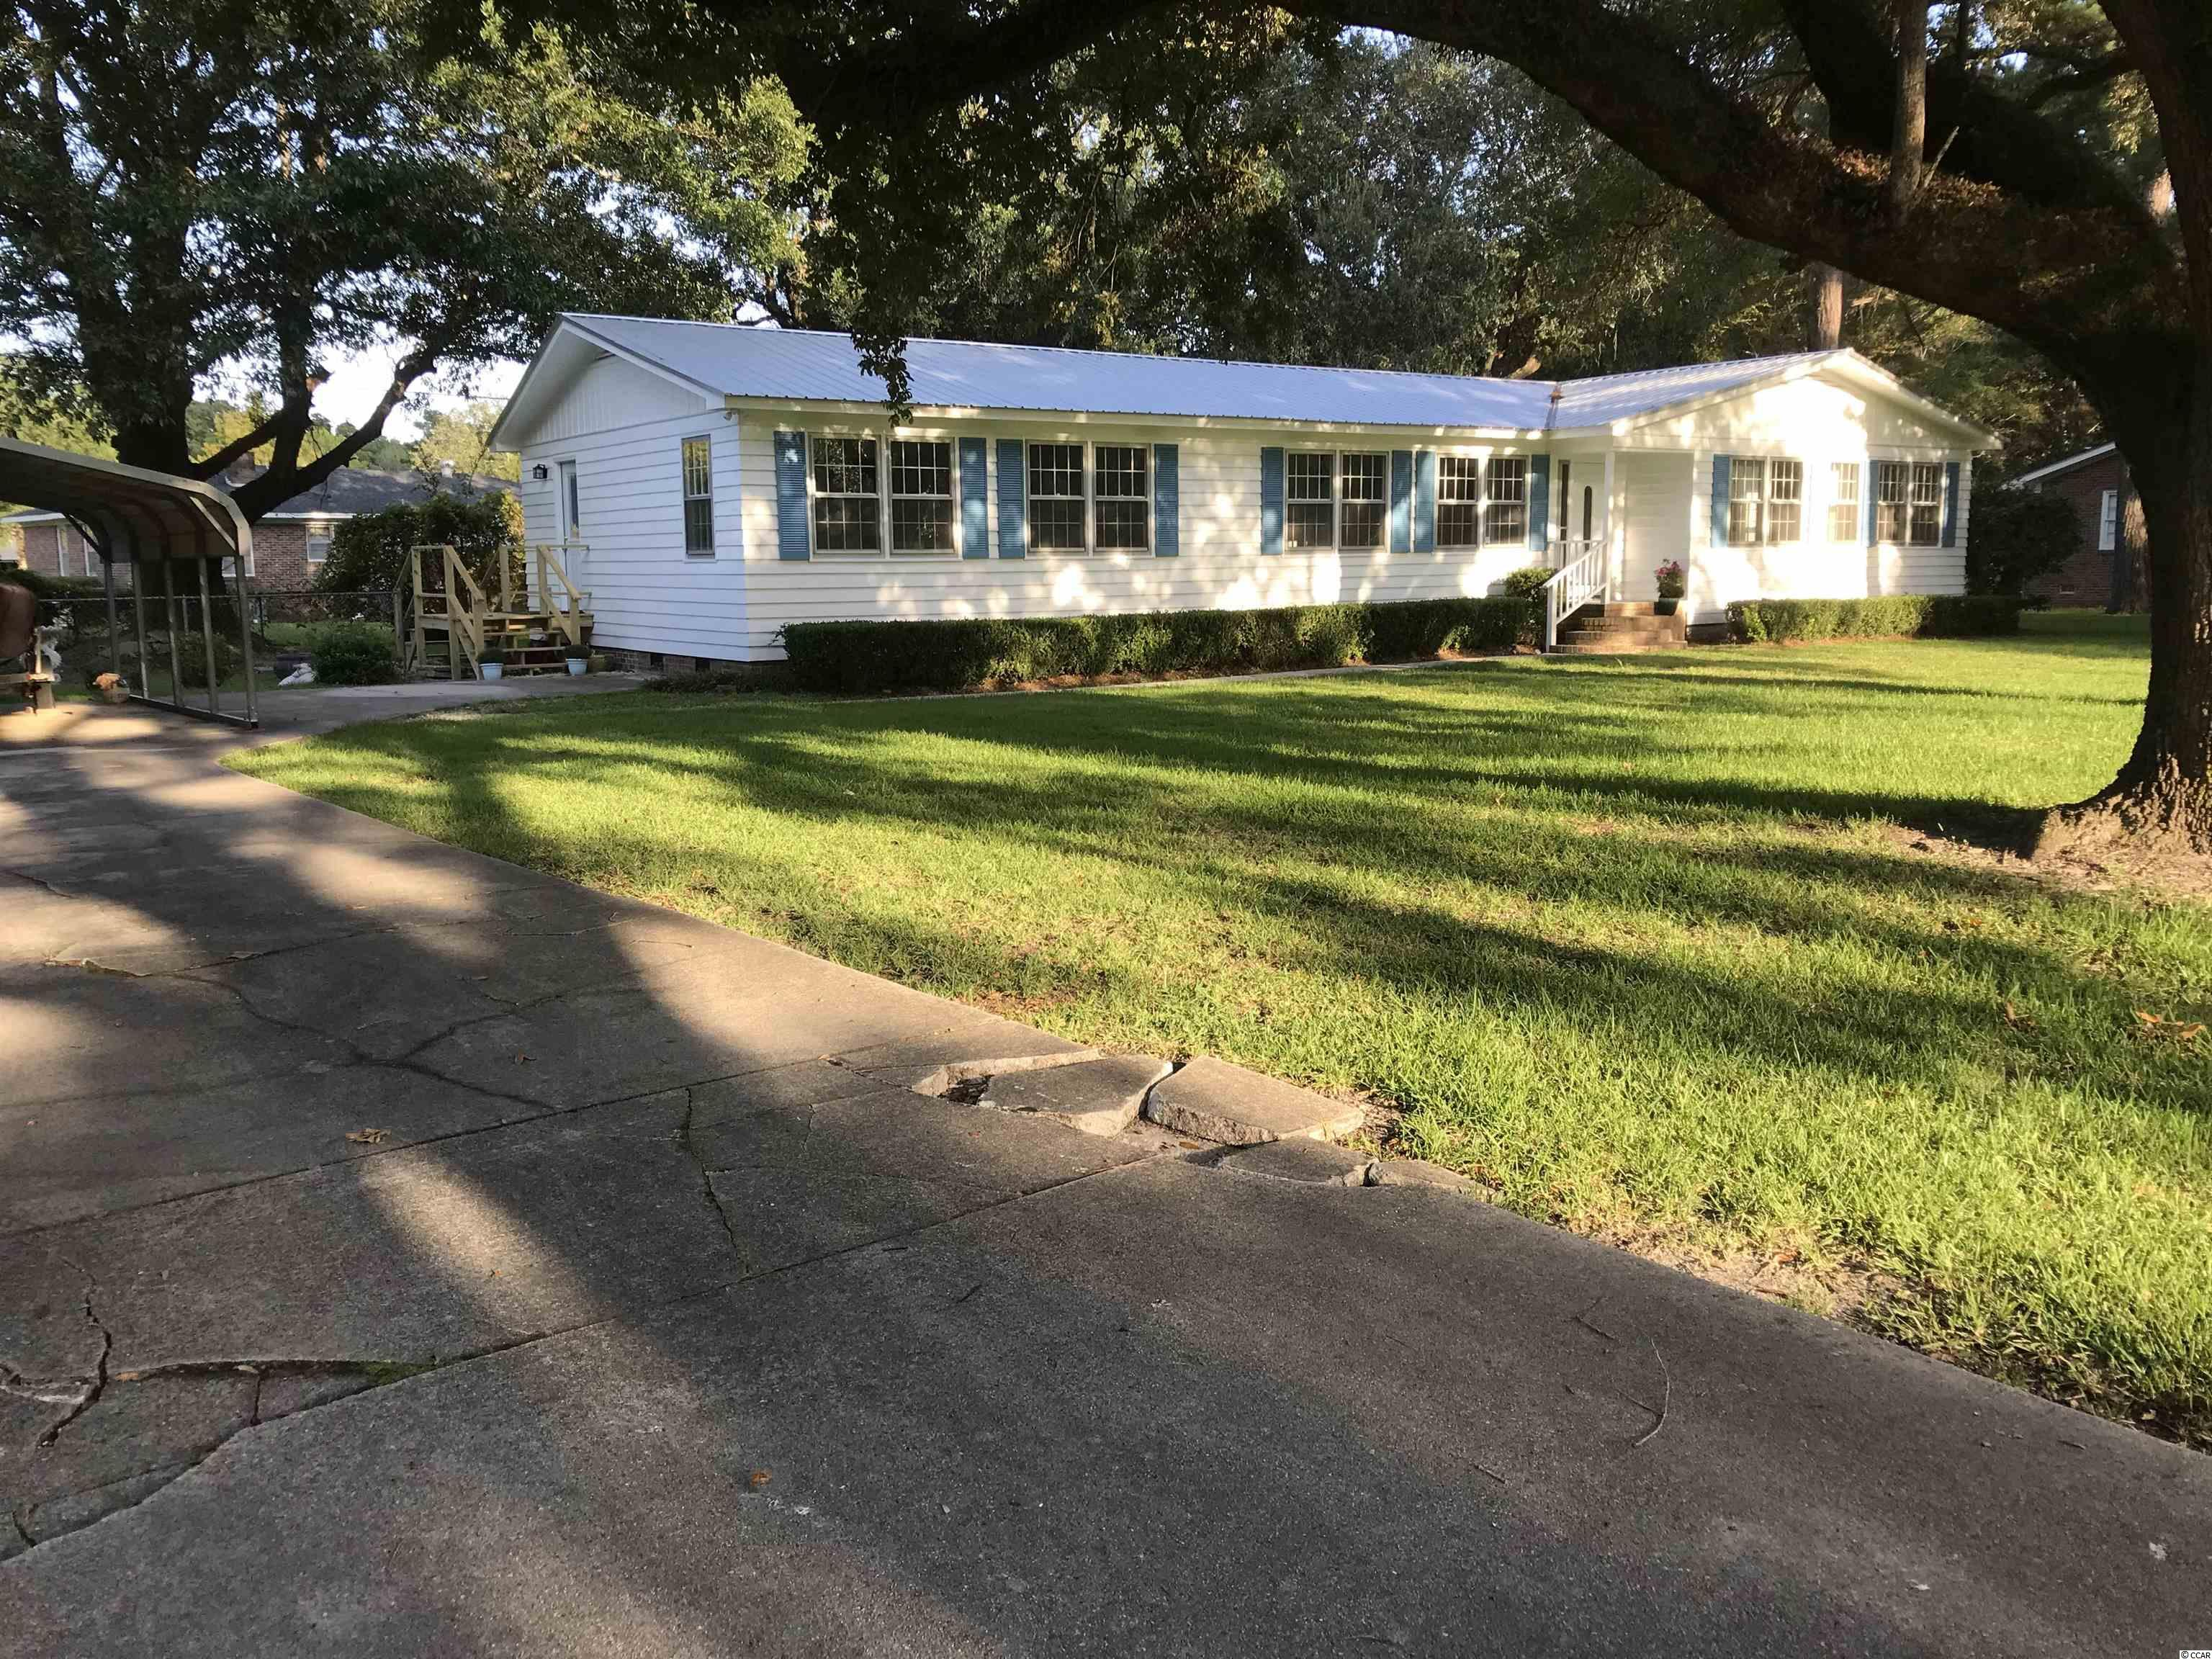 Absolutely beautiful remodeled home on an oversized lot with majestic live oak trees in a quiet neighborhood with no HOA.    Close to all schools, stores and downtown Historic Georgetown.  And just 20 minutes away from the beach. Home has 2 large primary suites, all new electrical wiring; new plumbing; new roof; screened porch; and appliances convey.  (New washer & dryer to be installed.)  Can go on and on about how great this house is but you will have to see it yourself to know.